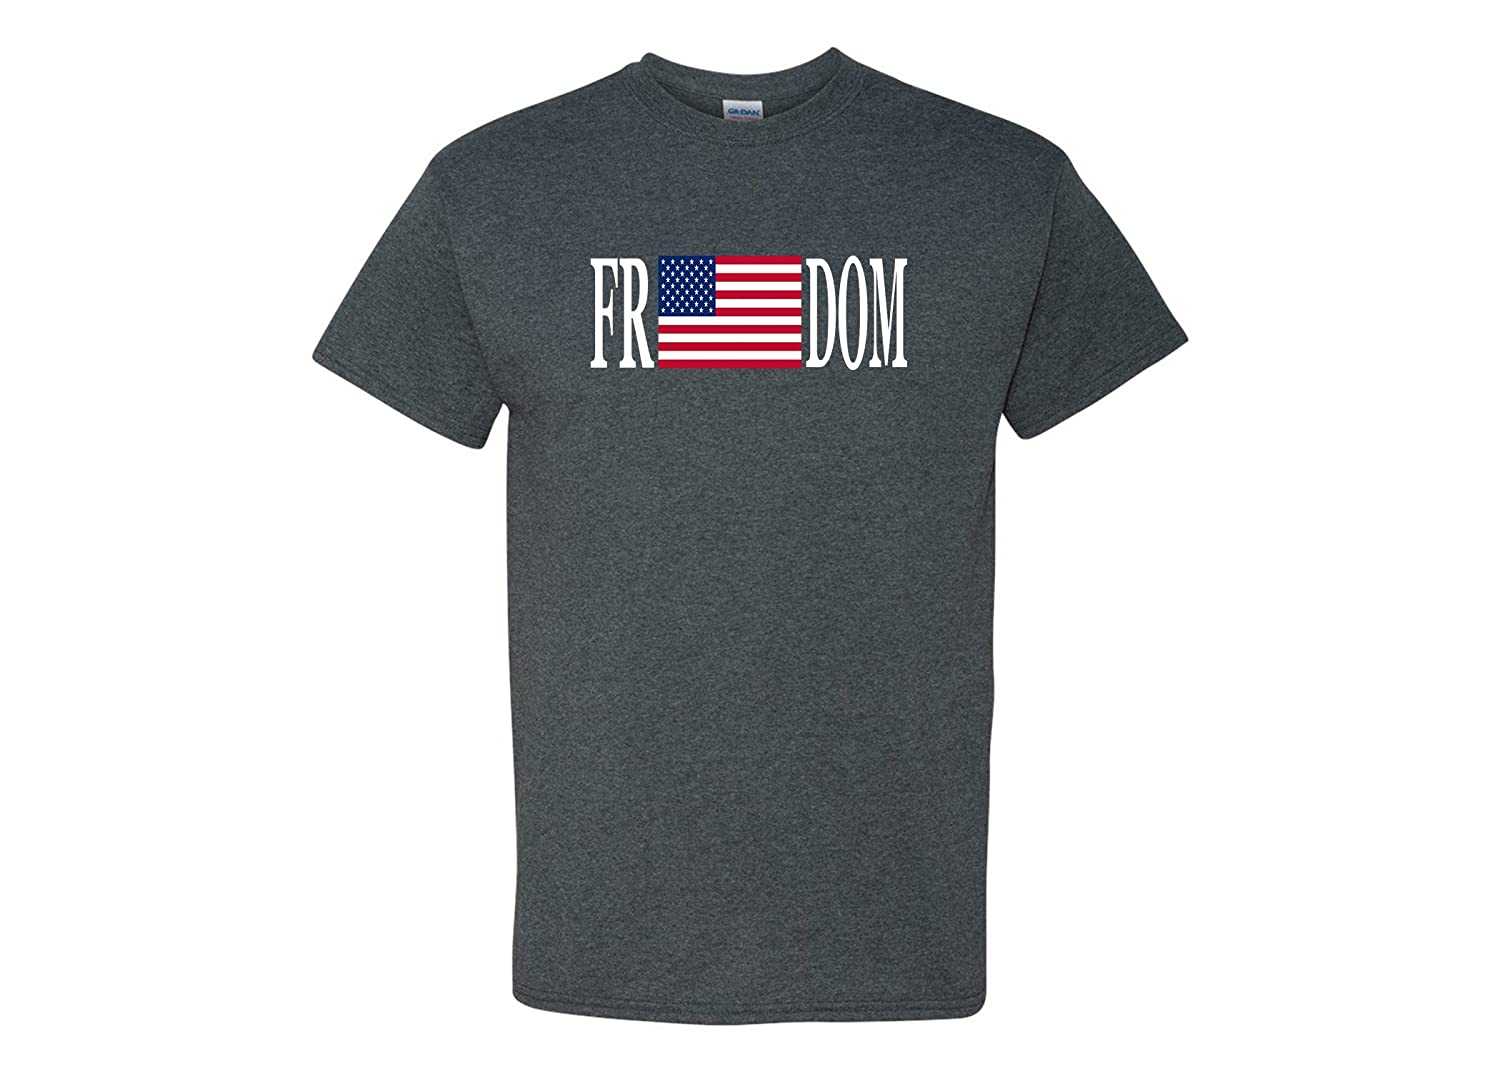 8e76982fa FREEDOM T-Shirt US Flag Shirt Show Support For Your Flag And Your Military  New Custom Design For Men Casual T Shirt This Cool Graphic Tee Shirt Makes  A ...